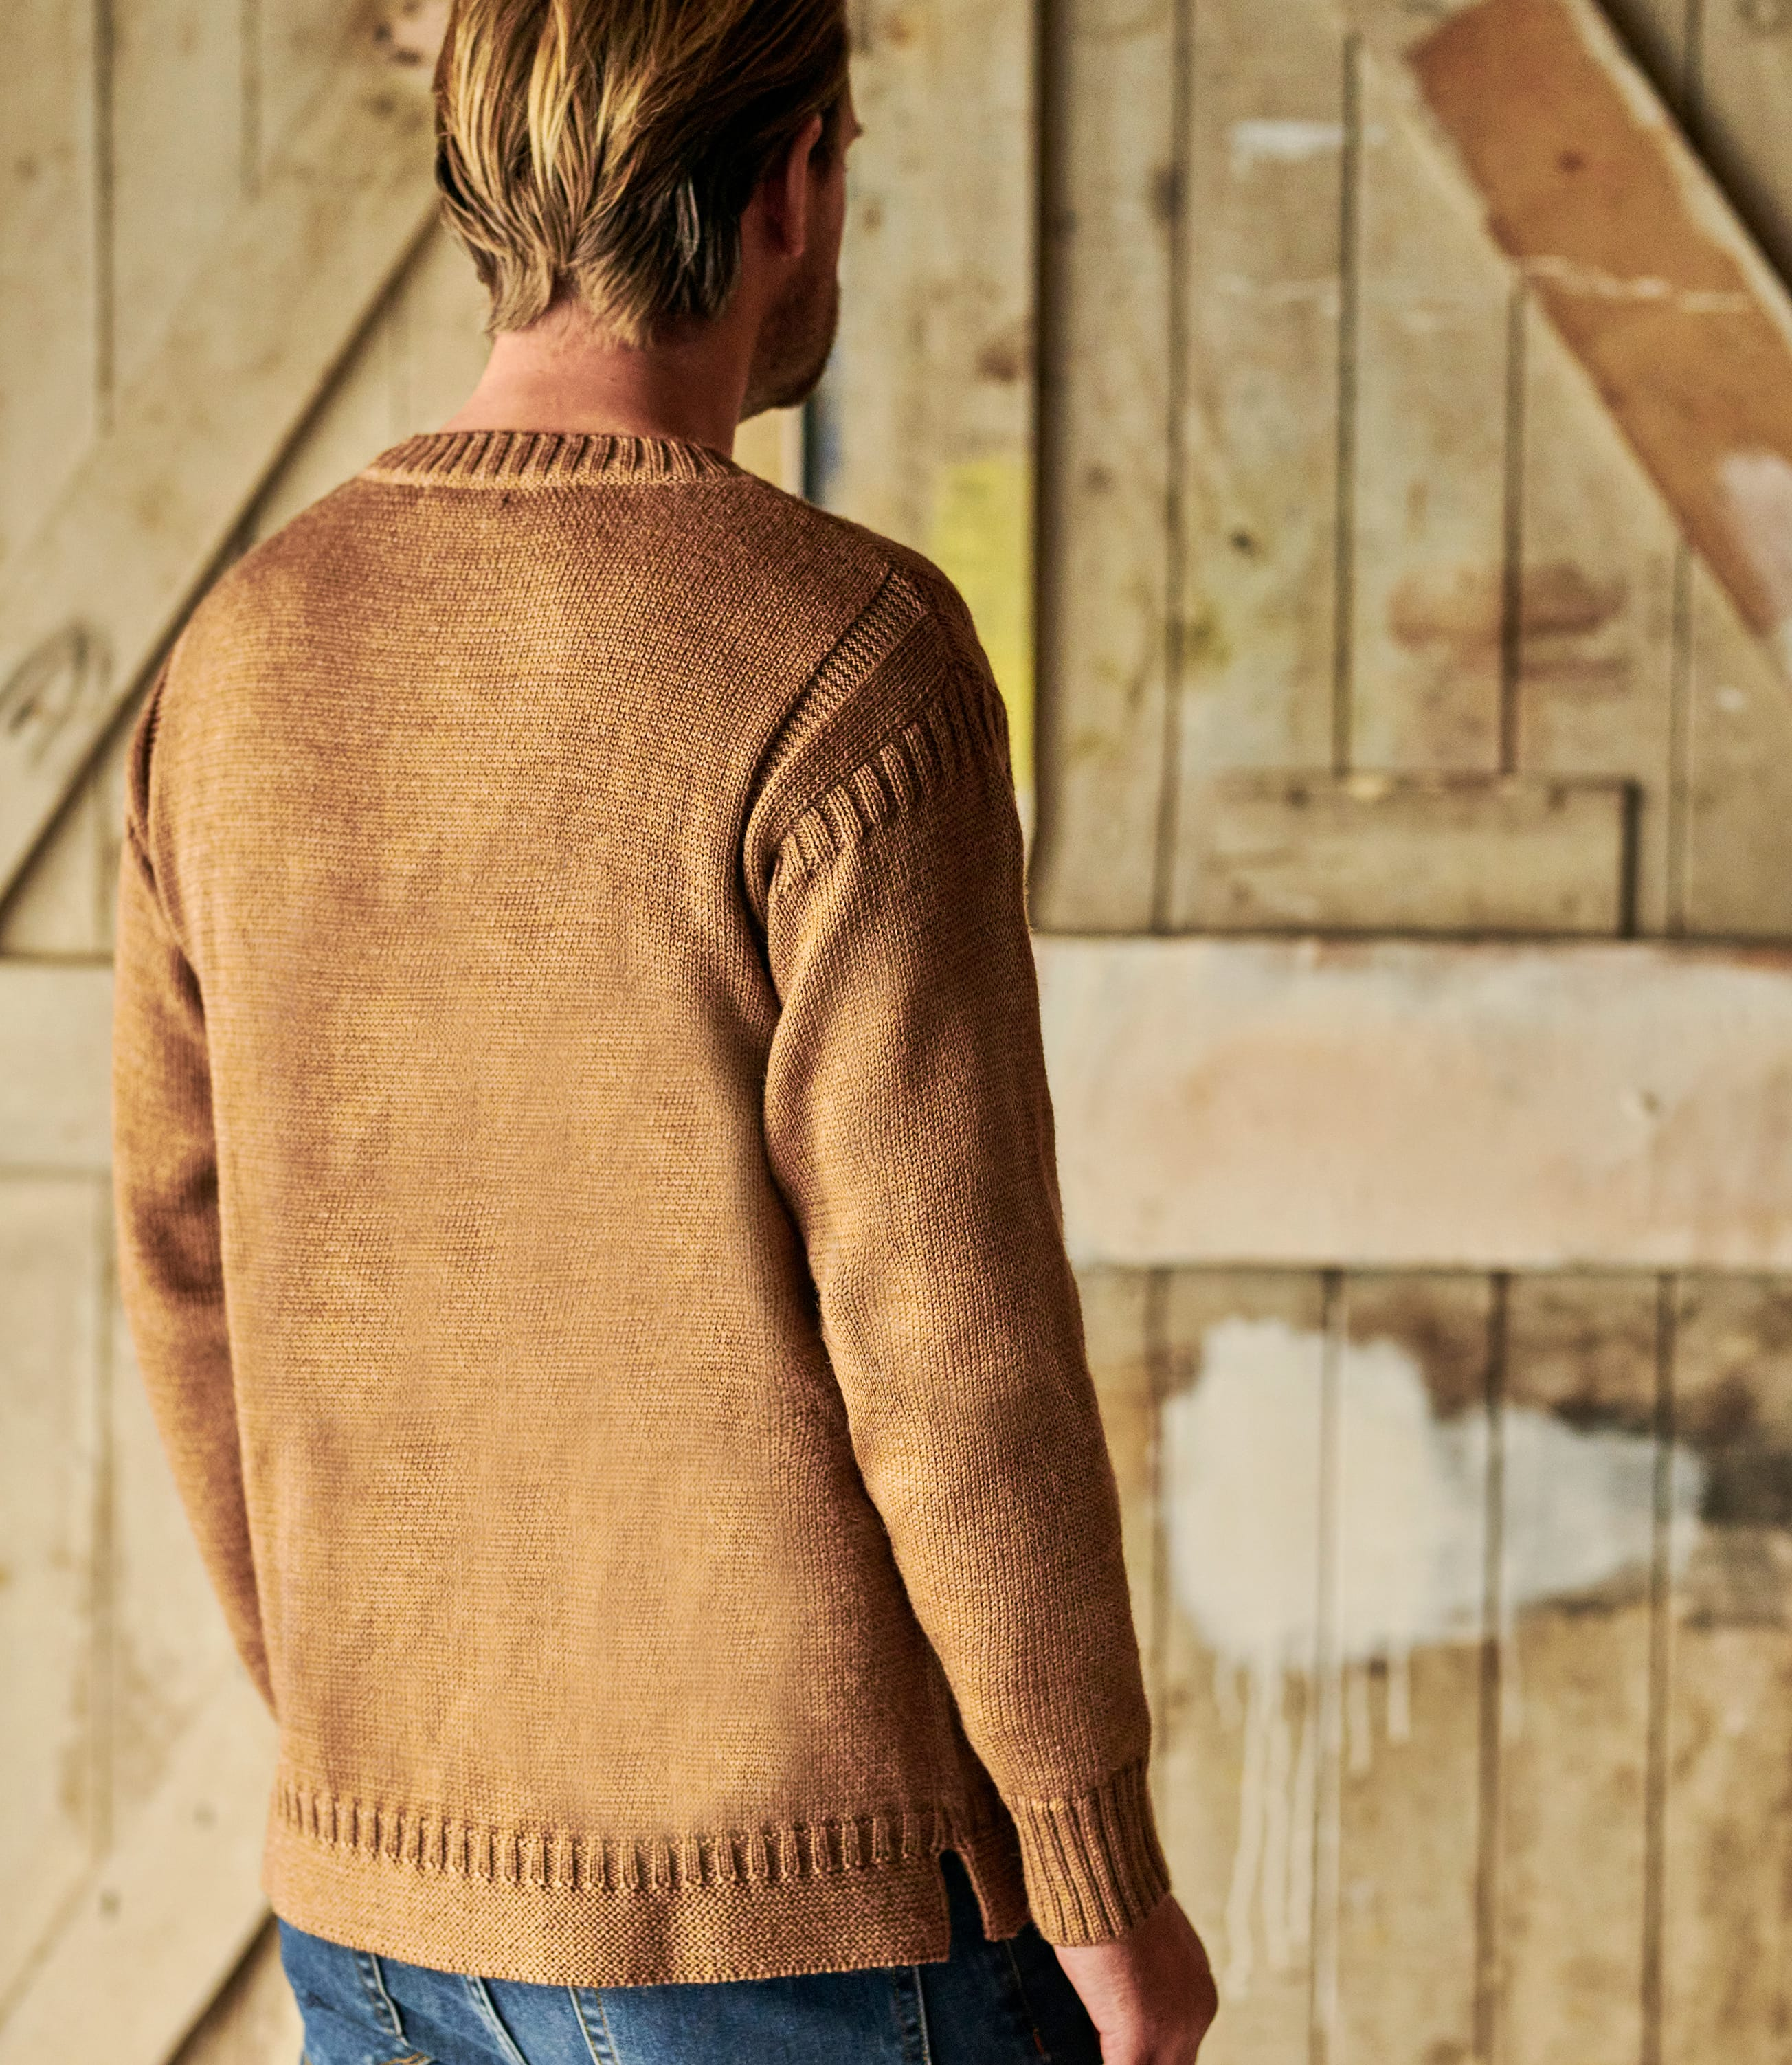 100% Pure Wool Knitted Guernsey Sweater